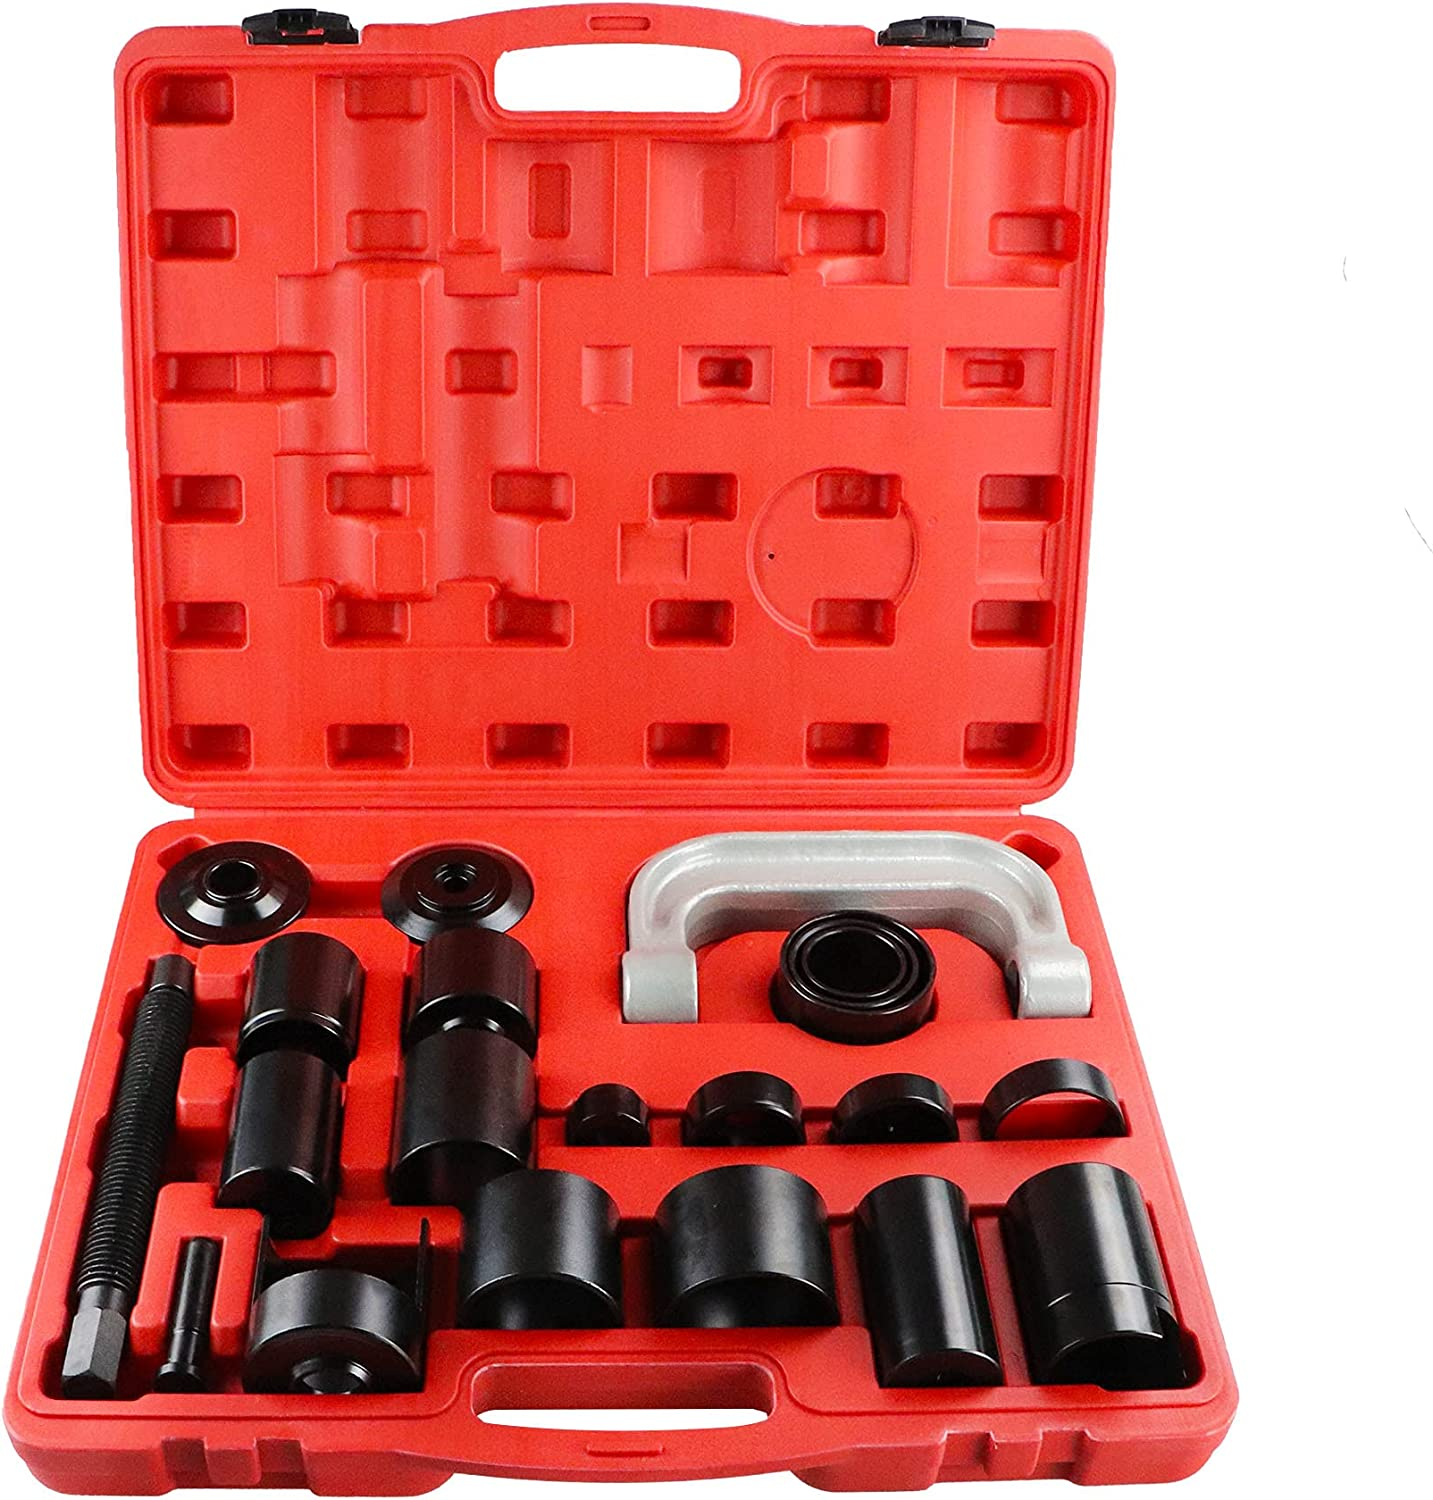 Large-scale sale Jackma555 21PCS Master overseas Ball Joint J Lower Upper and Press